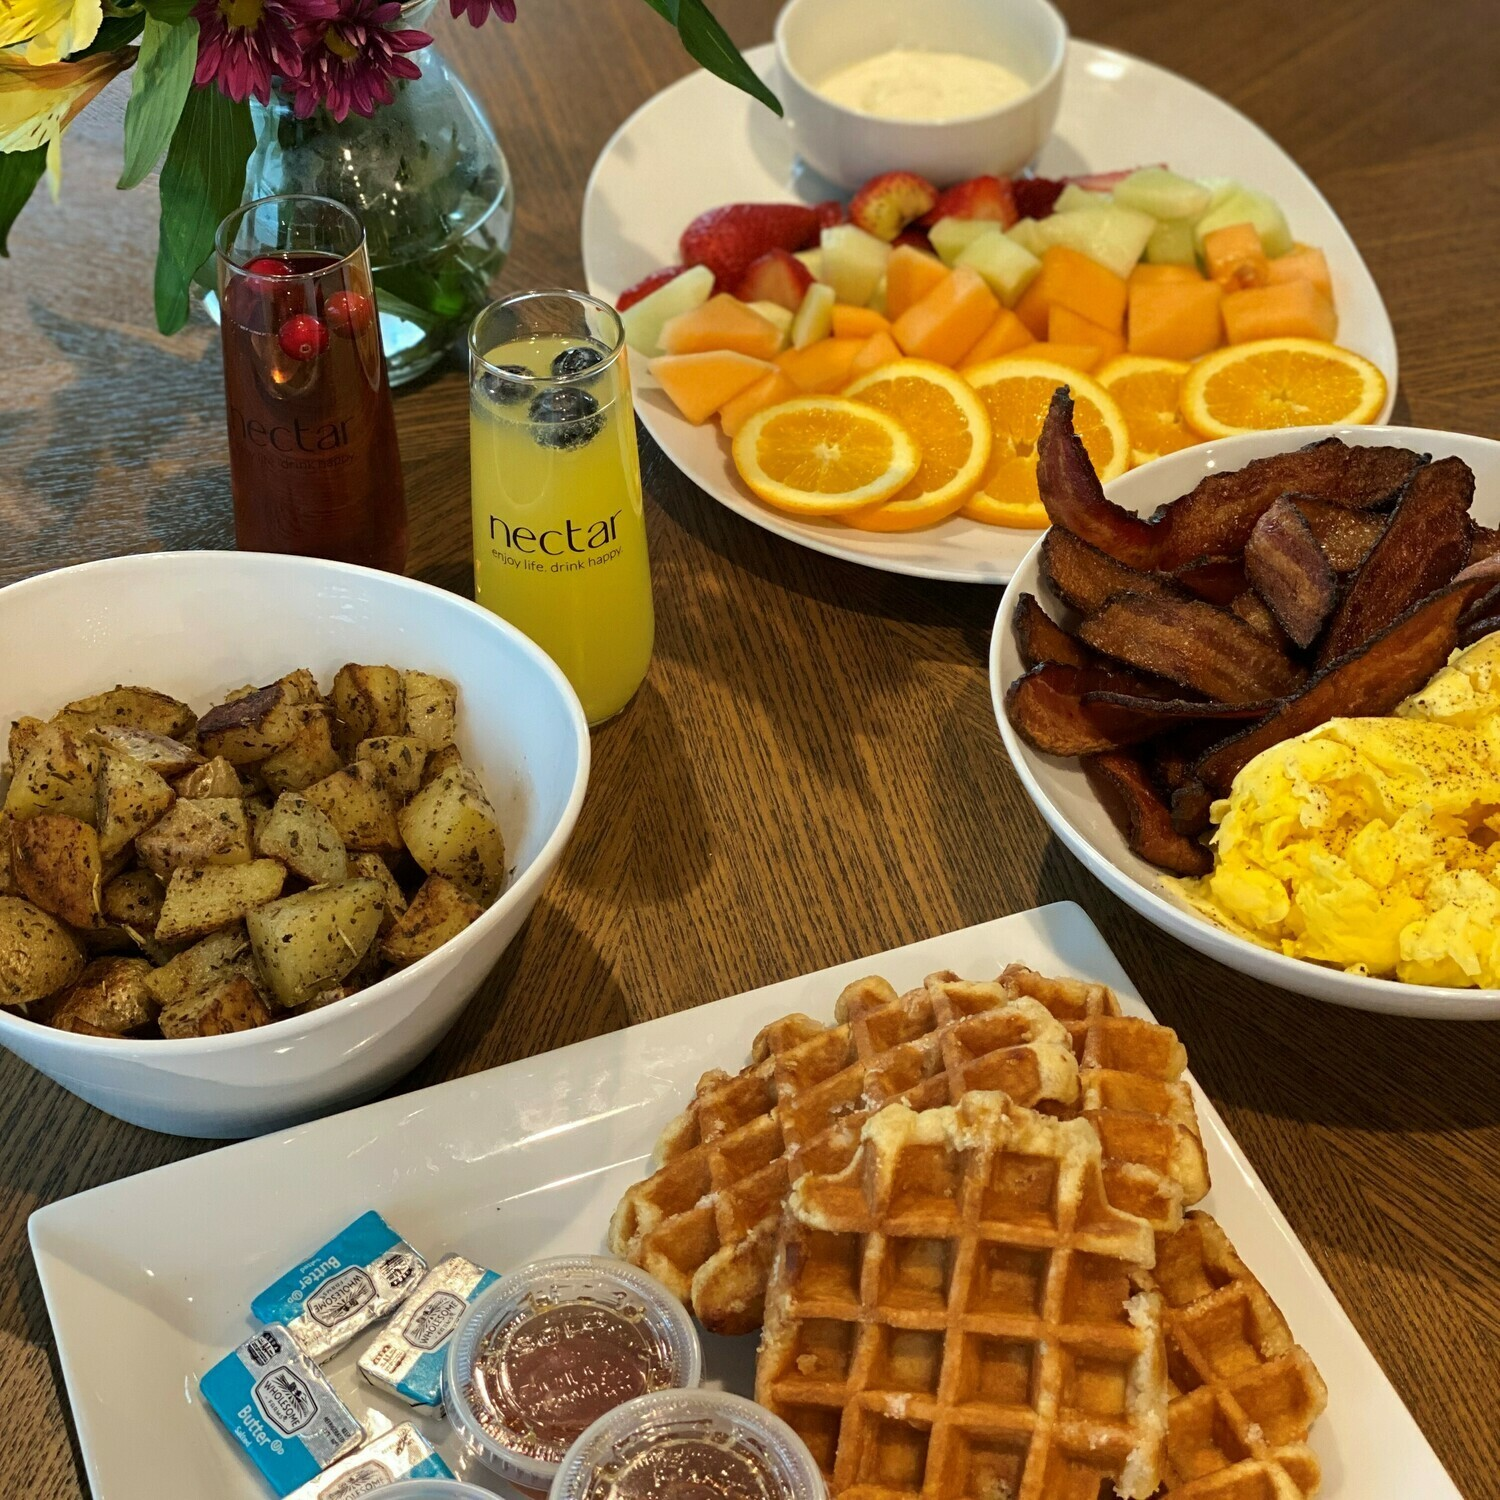 Celebrate Mother S Day With Take Home Brunch And Other Restaurant Specials Food News Spokane The Pacific Northwest Inlander News Politics Music Calendar Events In Spokane Coeur D Alene And The